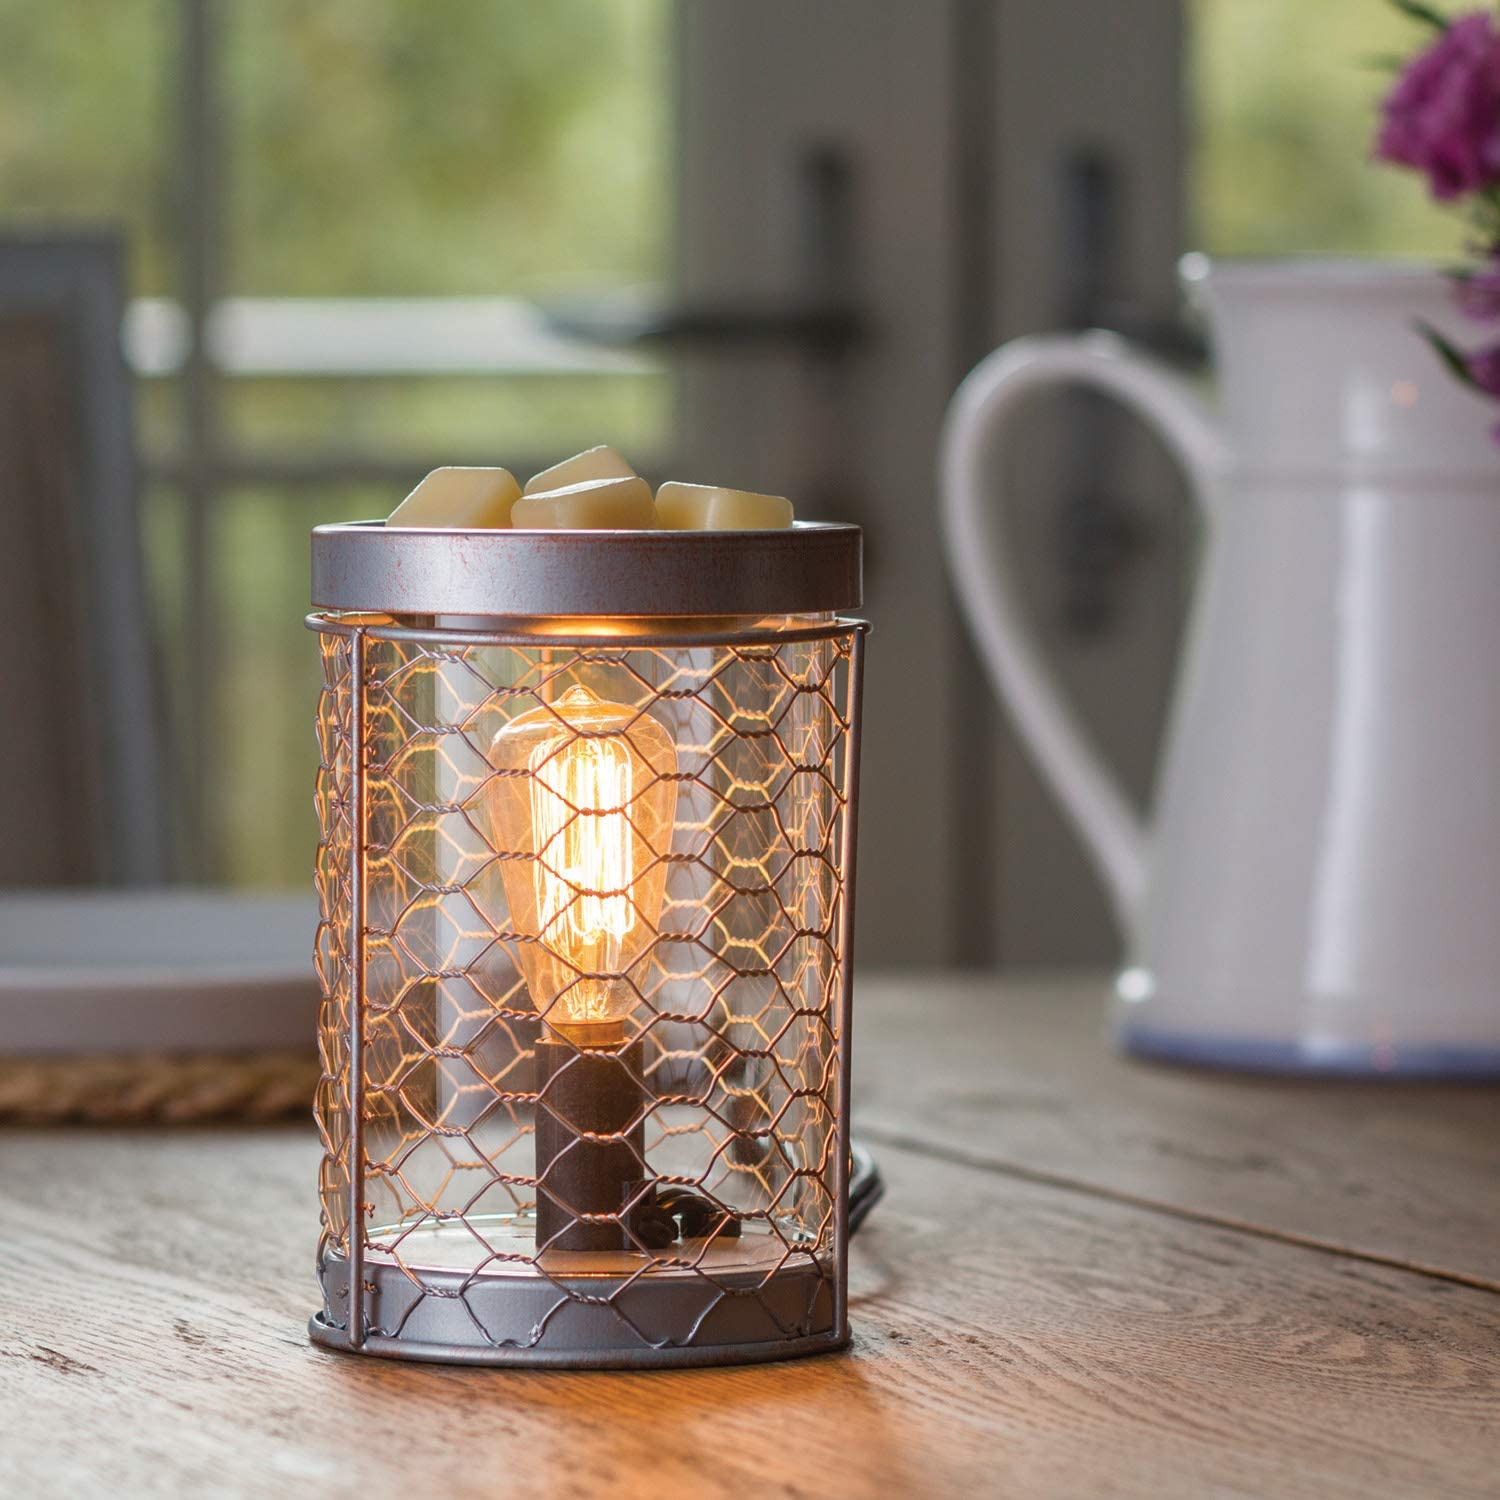 Candle Warmers Etc Edison Bulb Illumination Fragrance Warmer Light Up Warmer For Warming Scented Candle Wax Melts And Tarts Or Essential Oils To Freshen Room Arbor Amazon Co Uk Kitchen Home